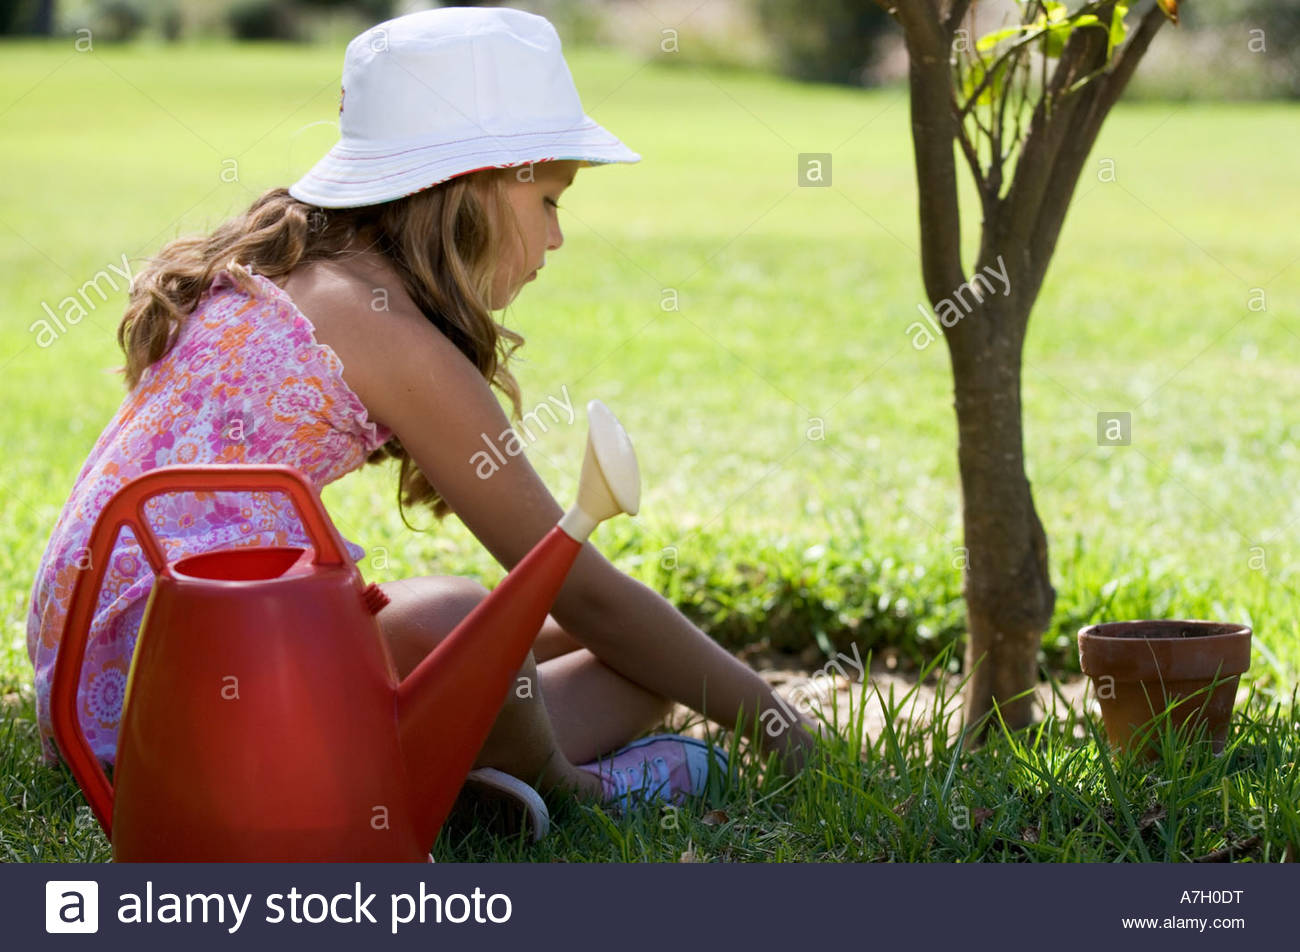 A young girl tending a plant in the garden - Stock Image